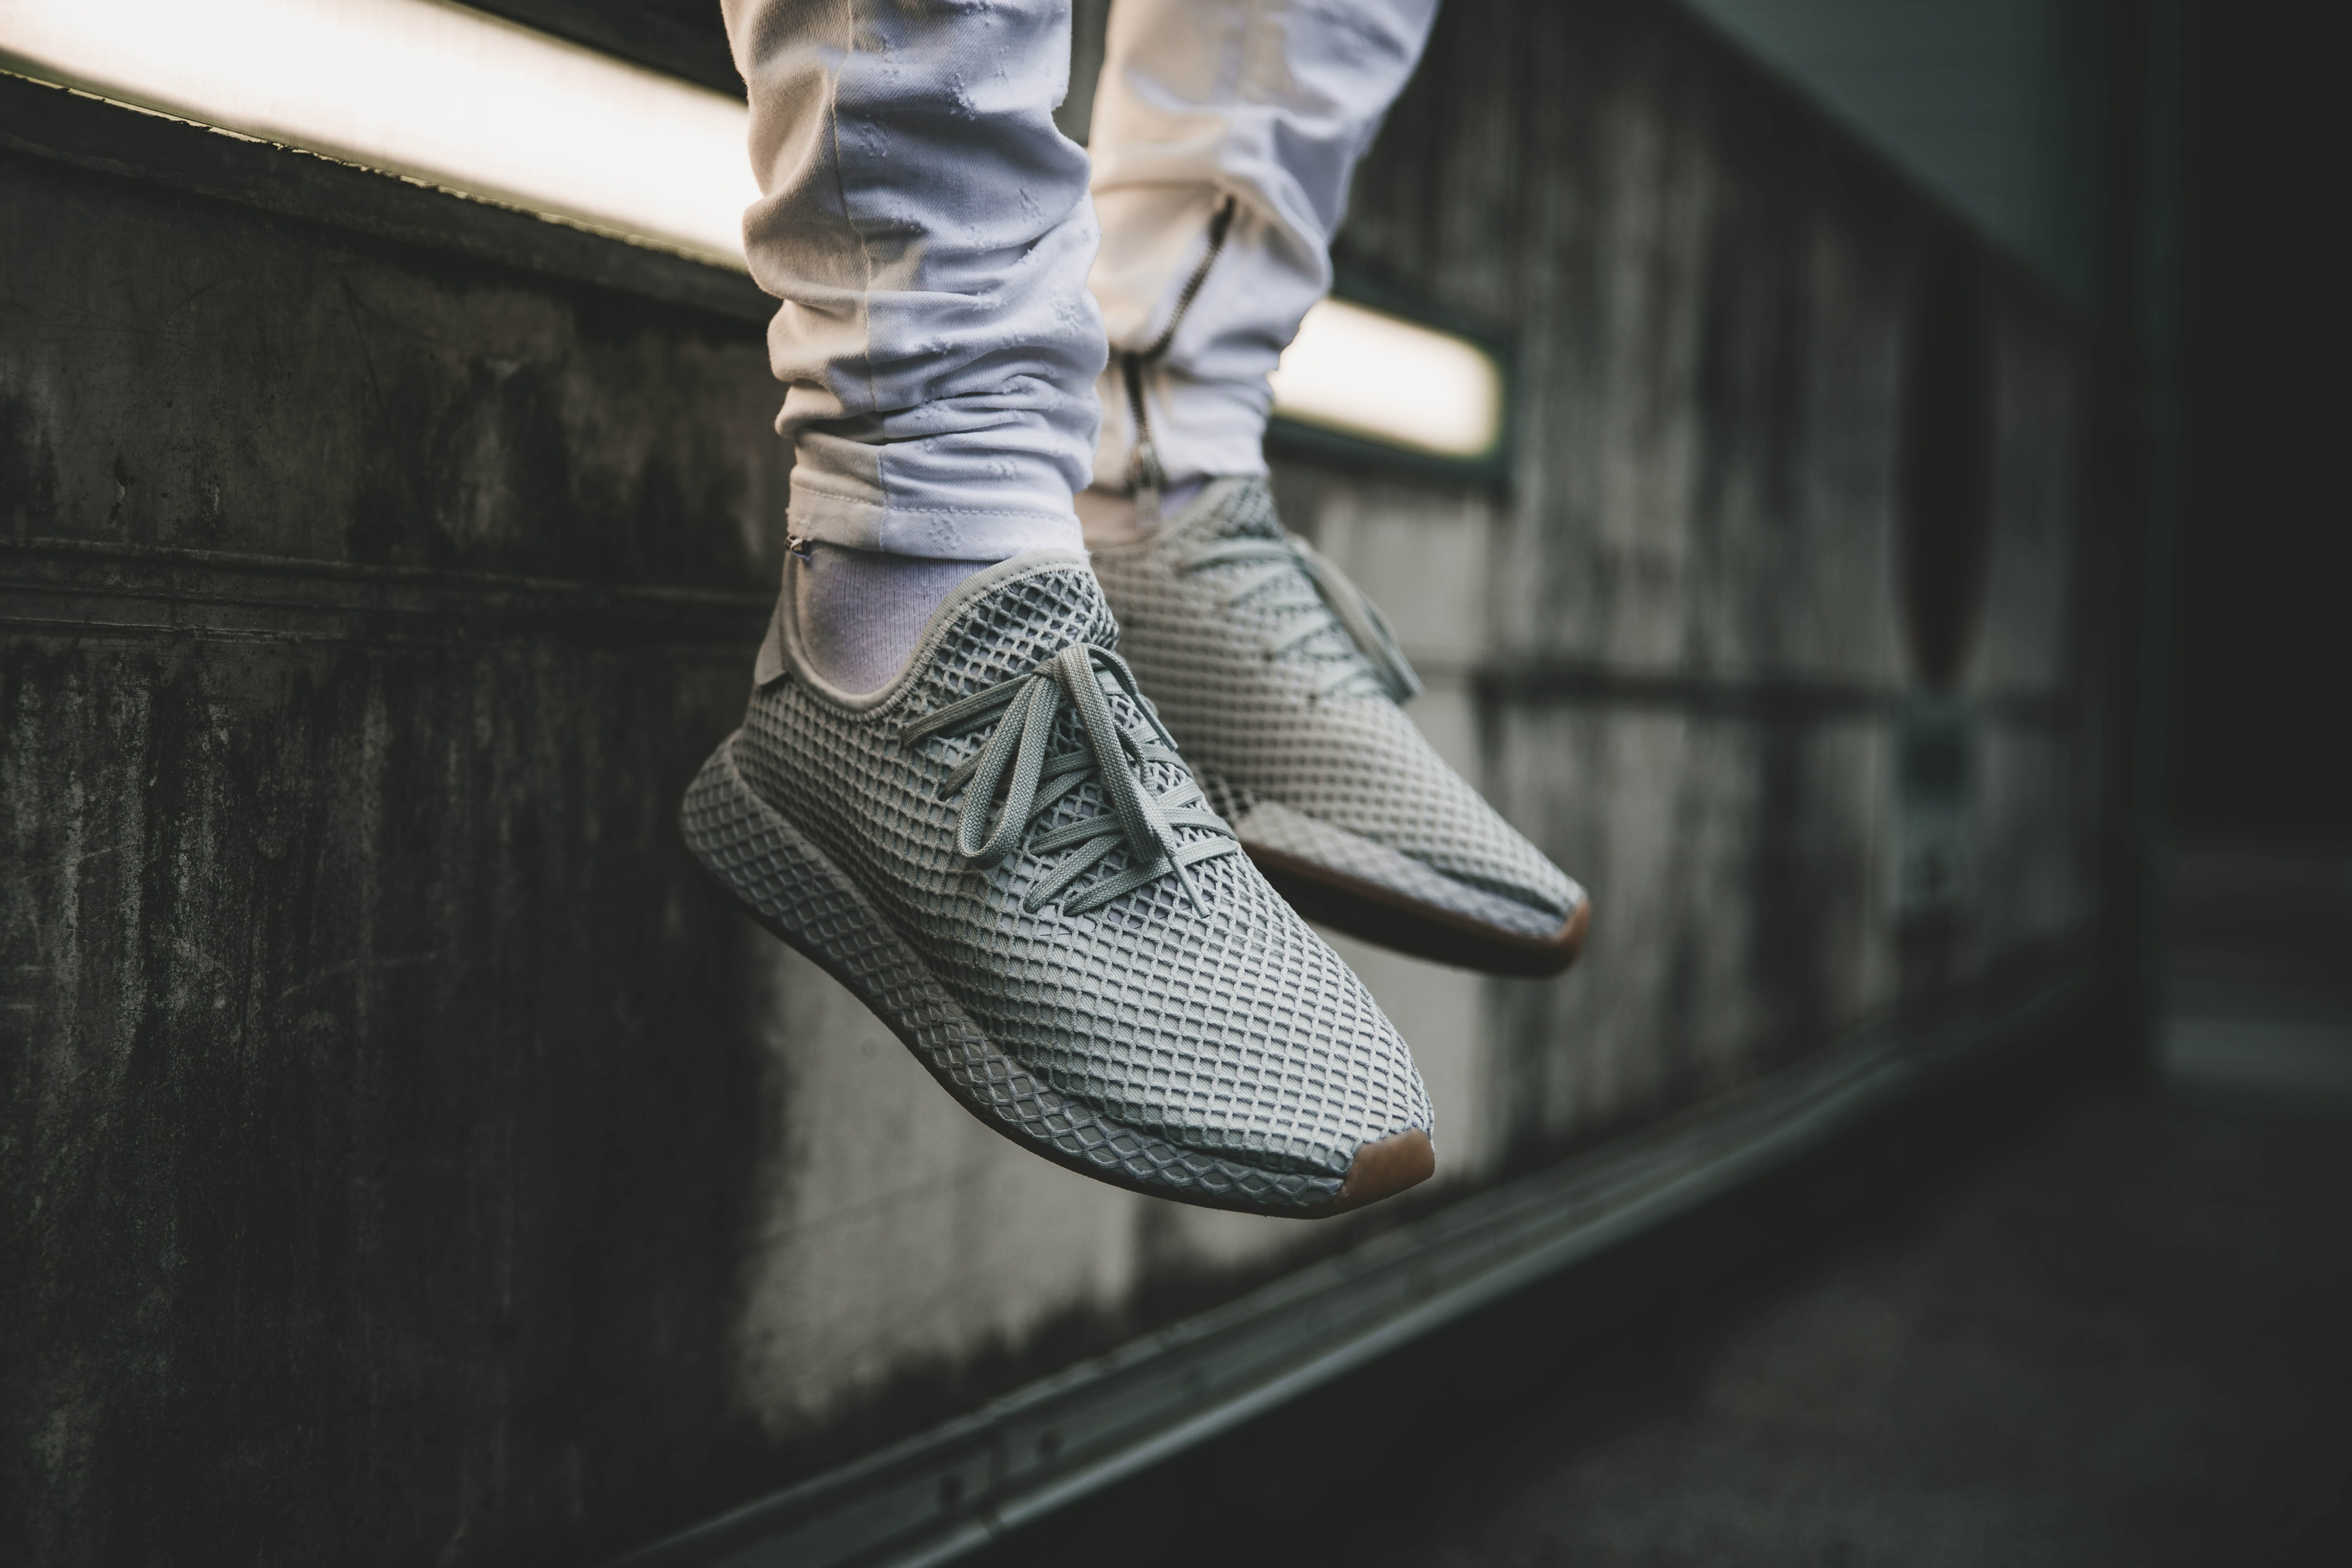 person wearing gray Adidas Boost sneakers